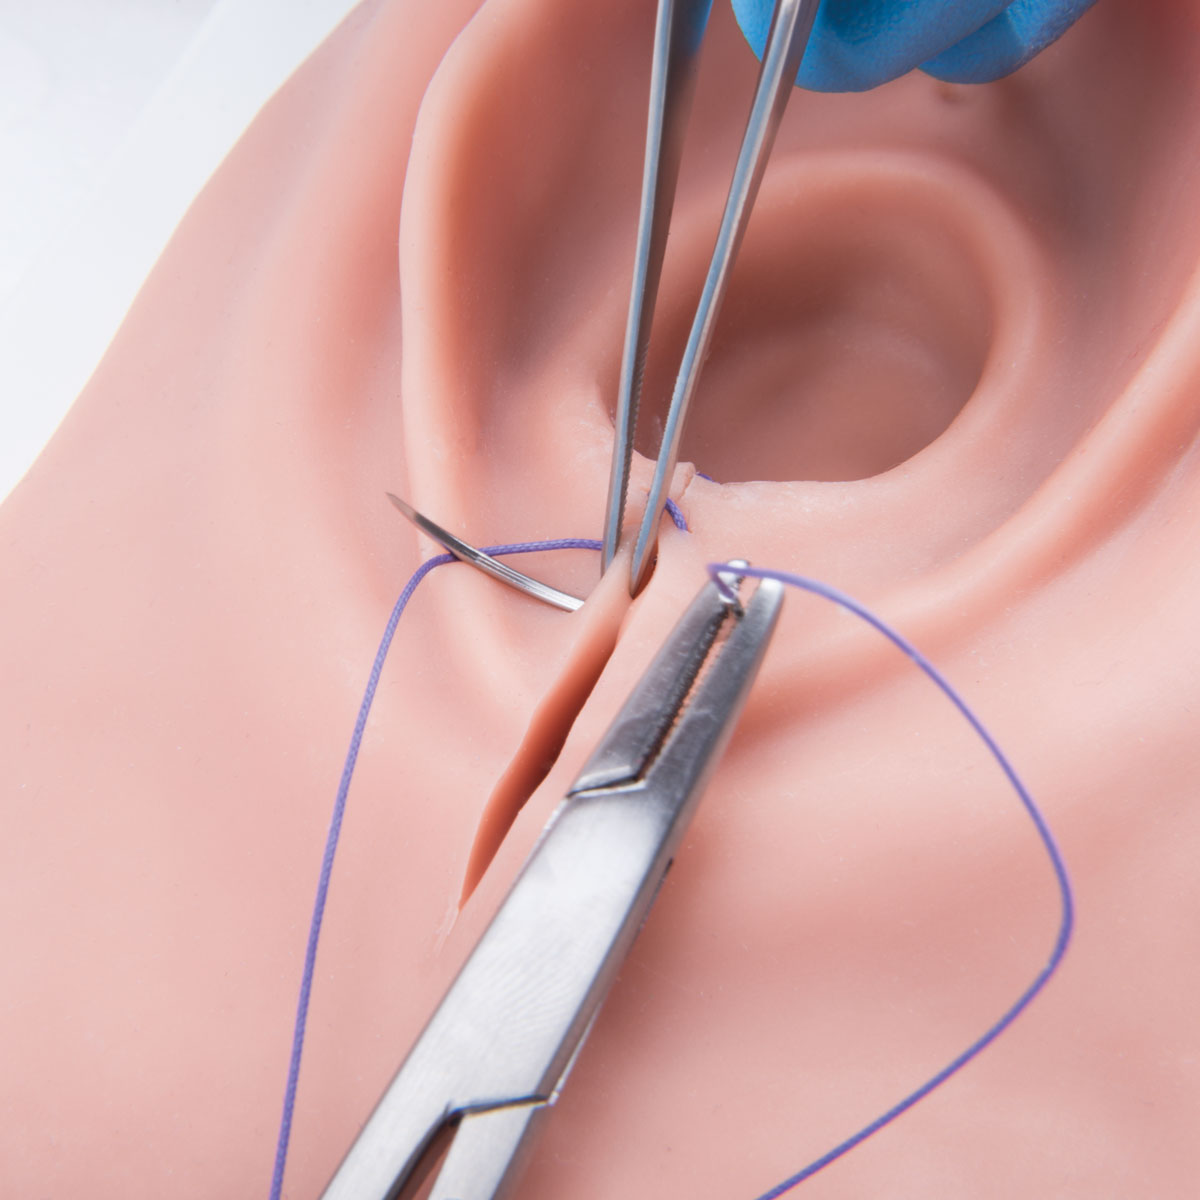 how to clean an episiotomy